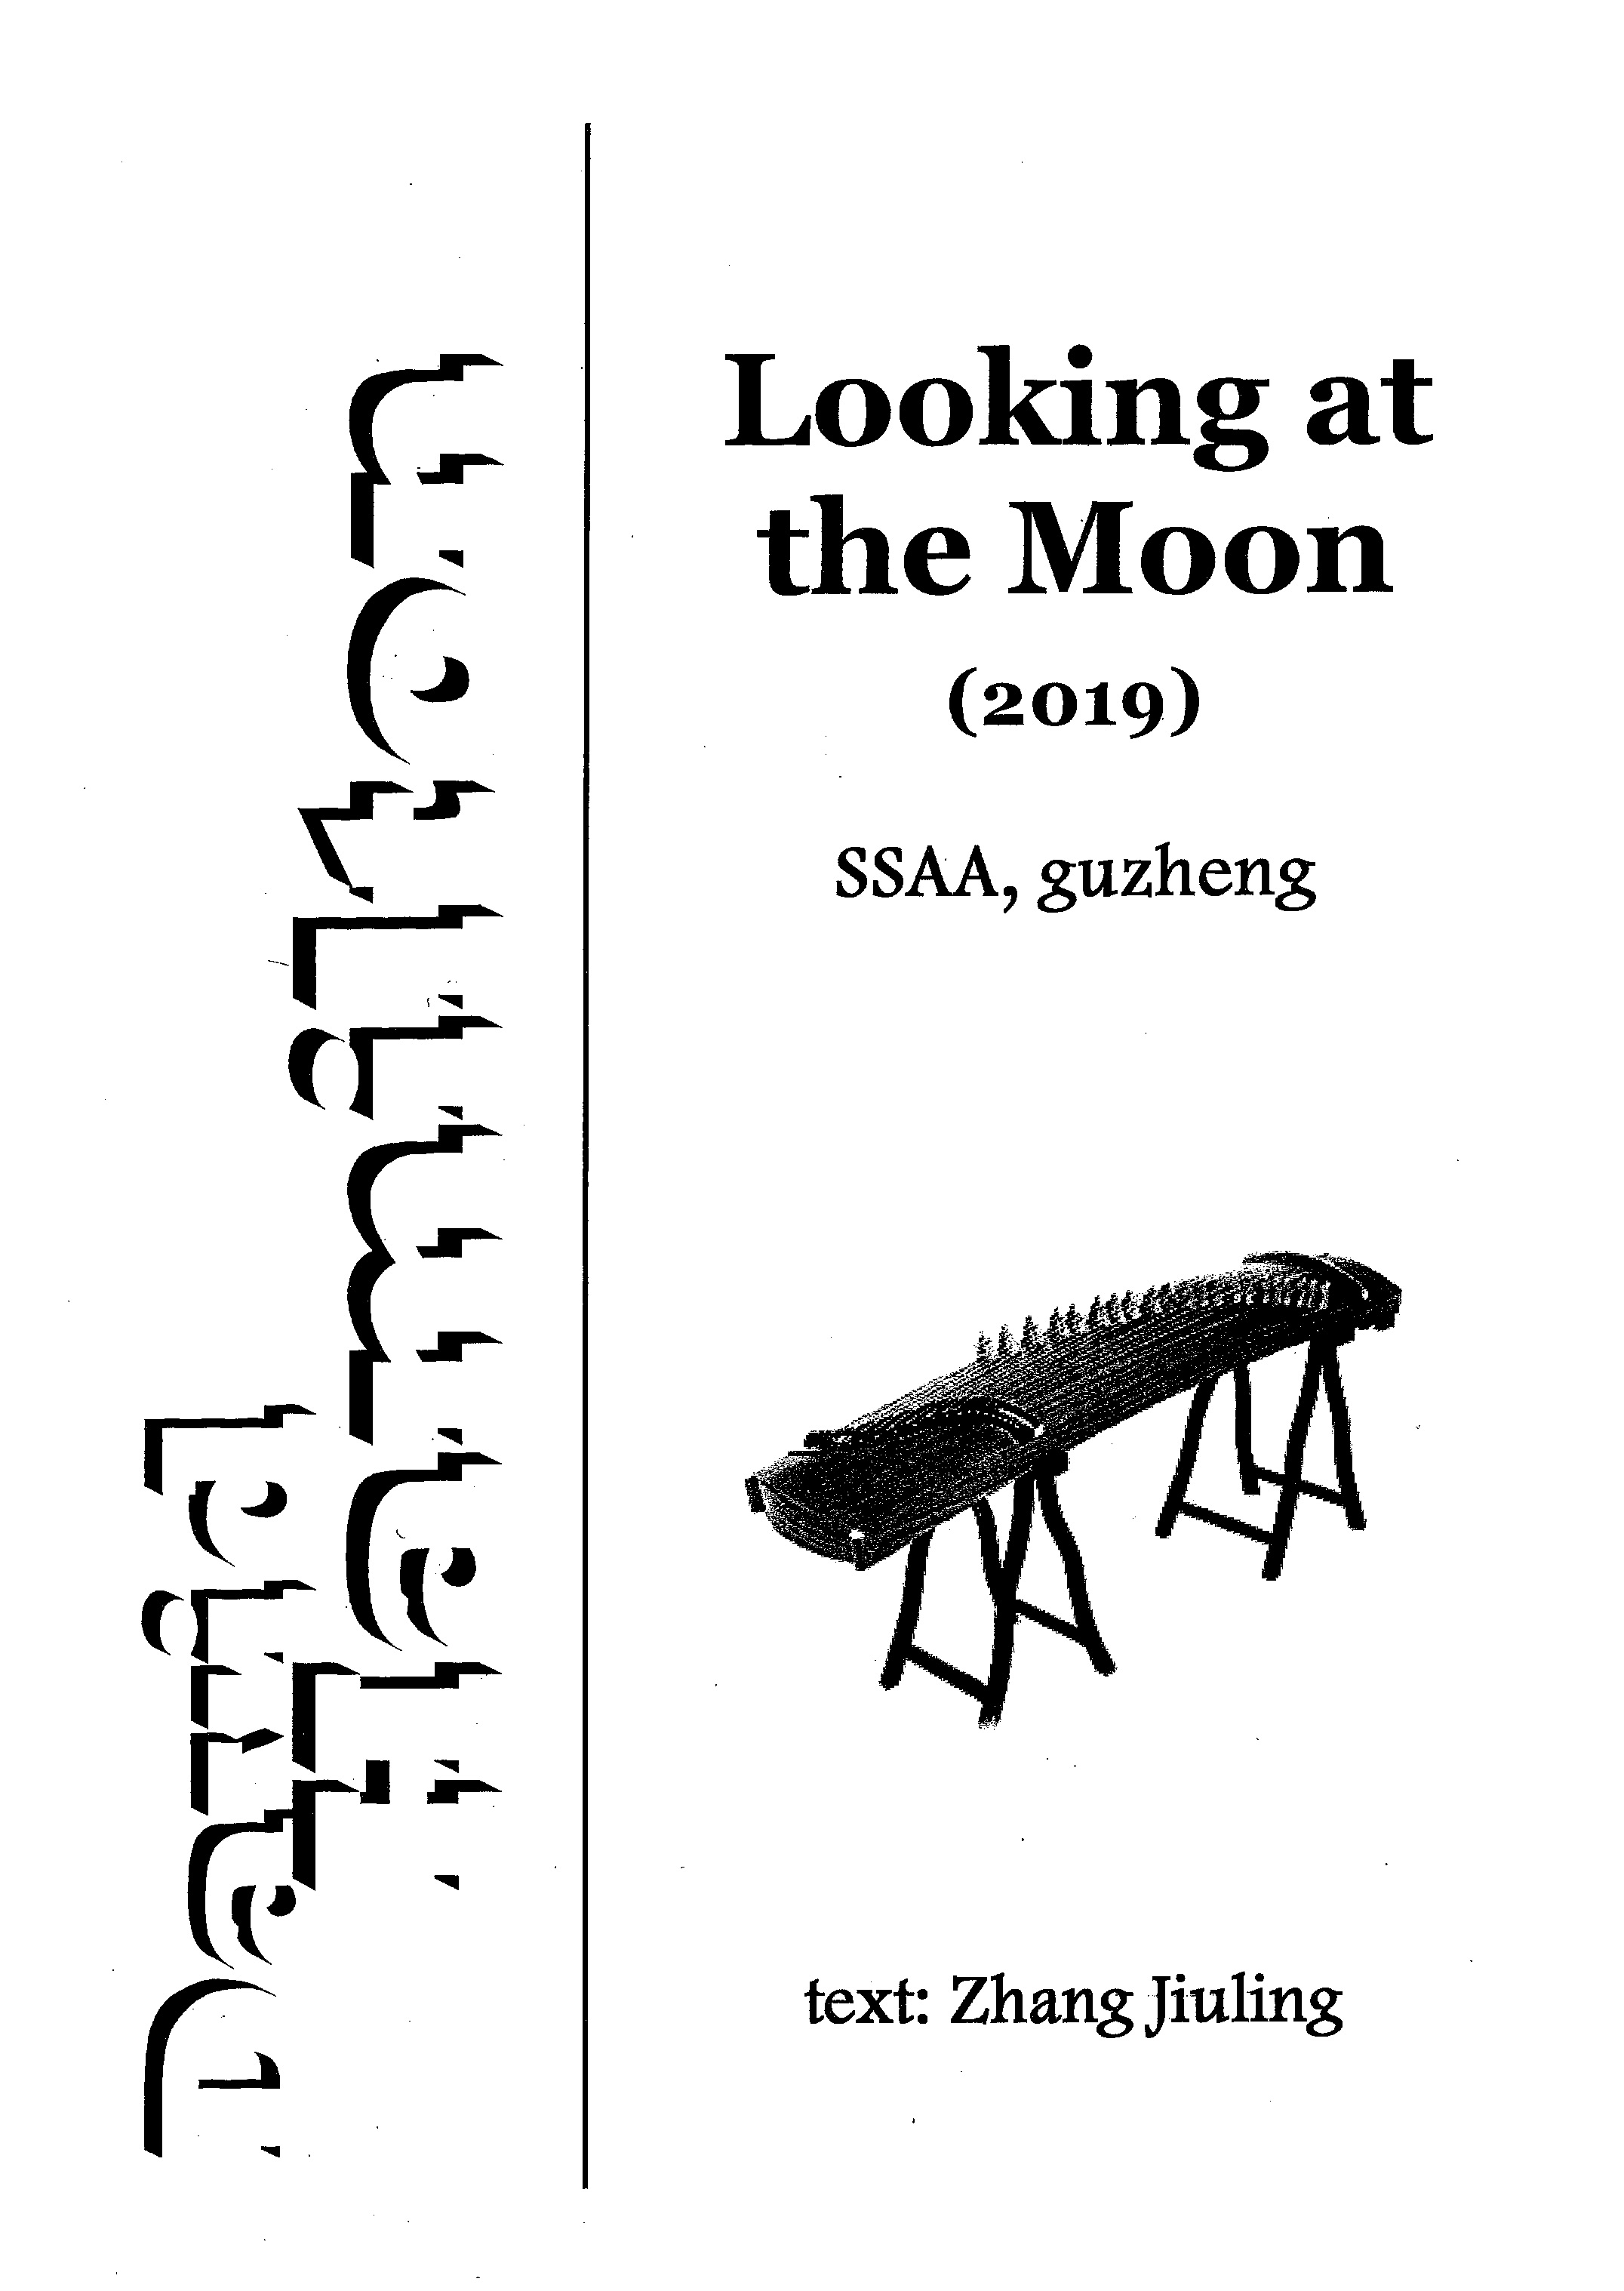 David Hamilton: Looking at the Moon - hardcopy SCORE